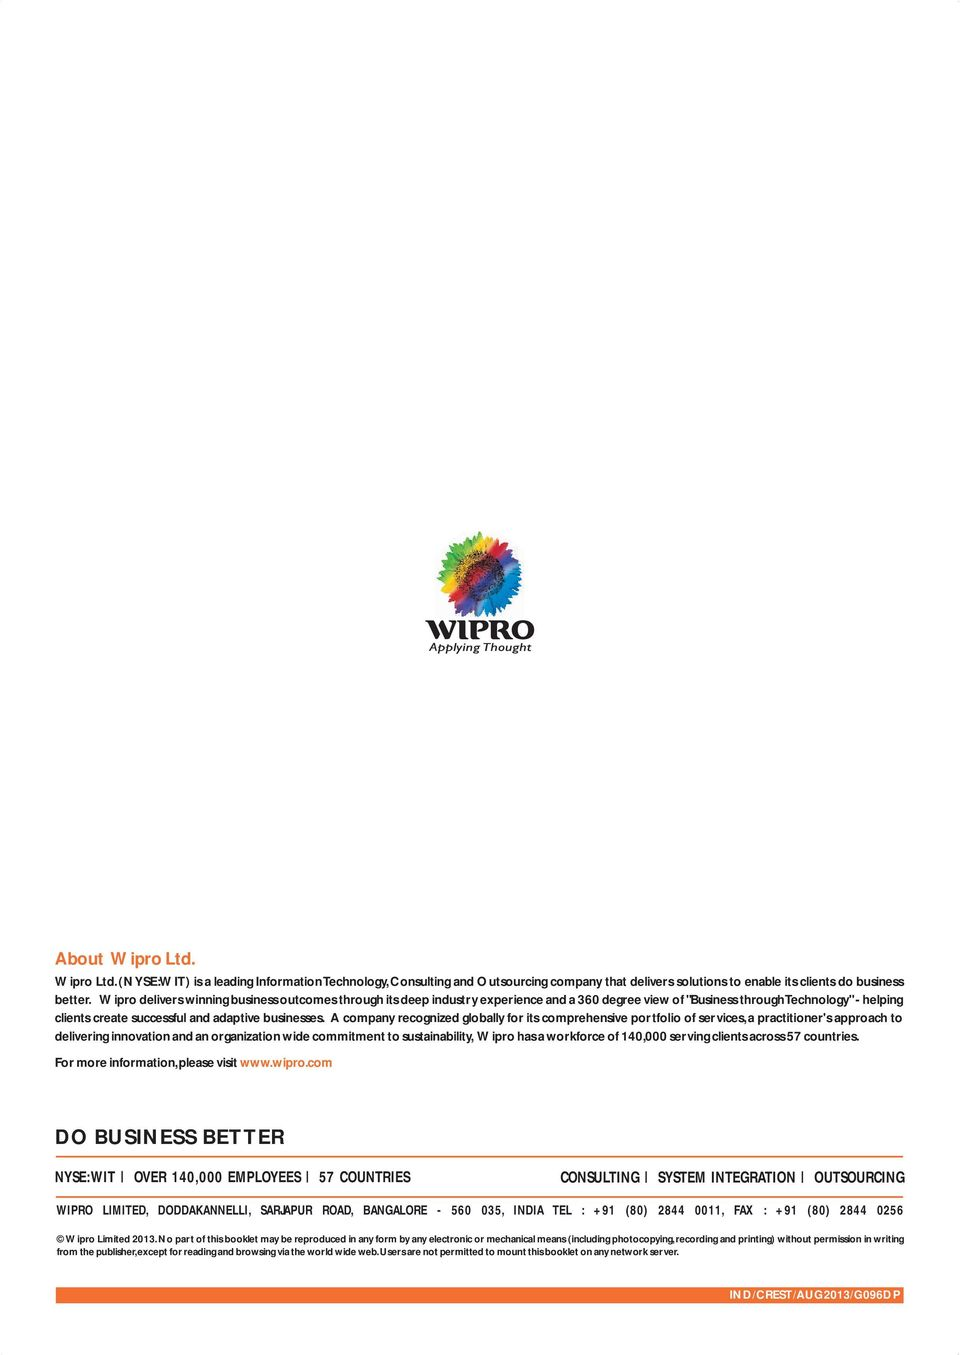 A company recognized globally for its comprehensive portfolio of services, a practitioner's approach to delivering innovation and an organization wide commitment to sustainability, Wipro has a